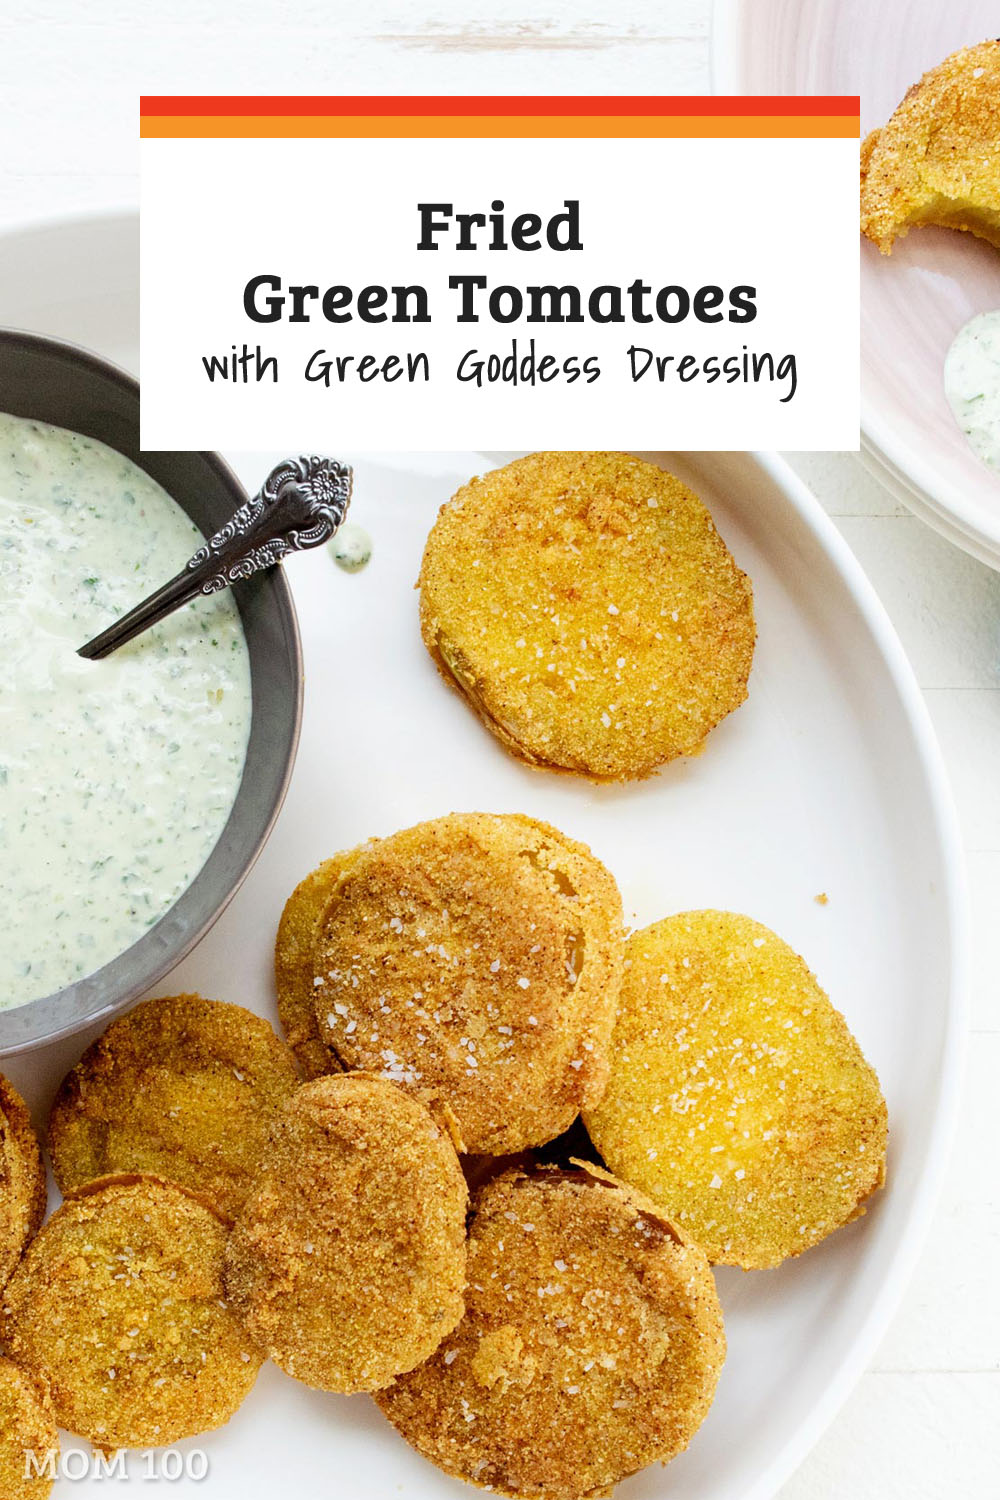 Fried Green Tomatoes with Green Goddess Dressing: The best creamy and super herby dressing drizzled over these crunchy-tender and tangy tomatoes.